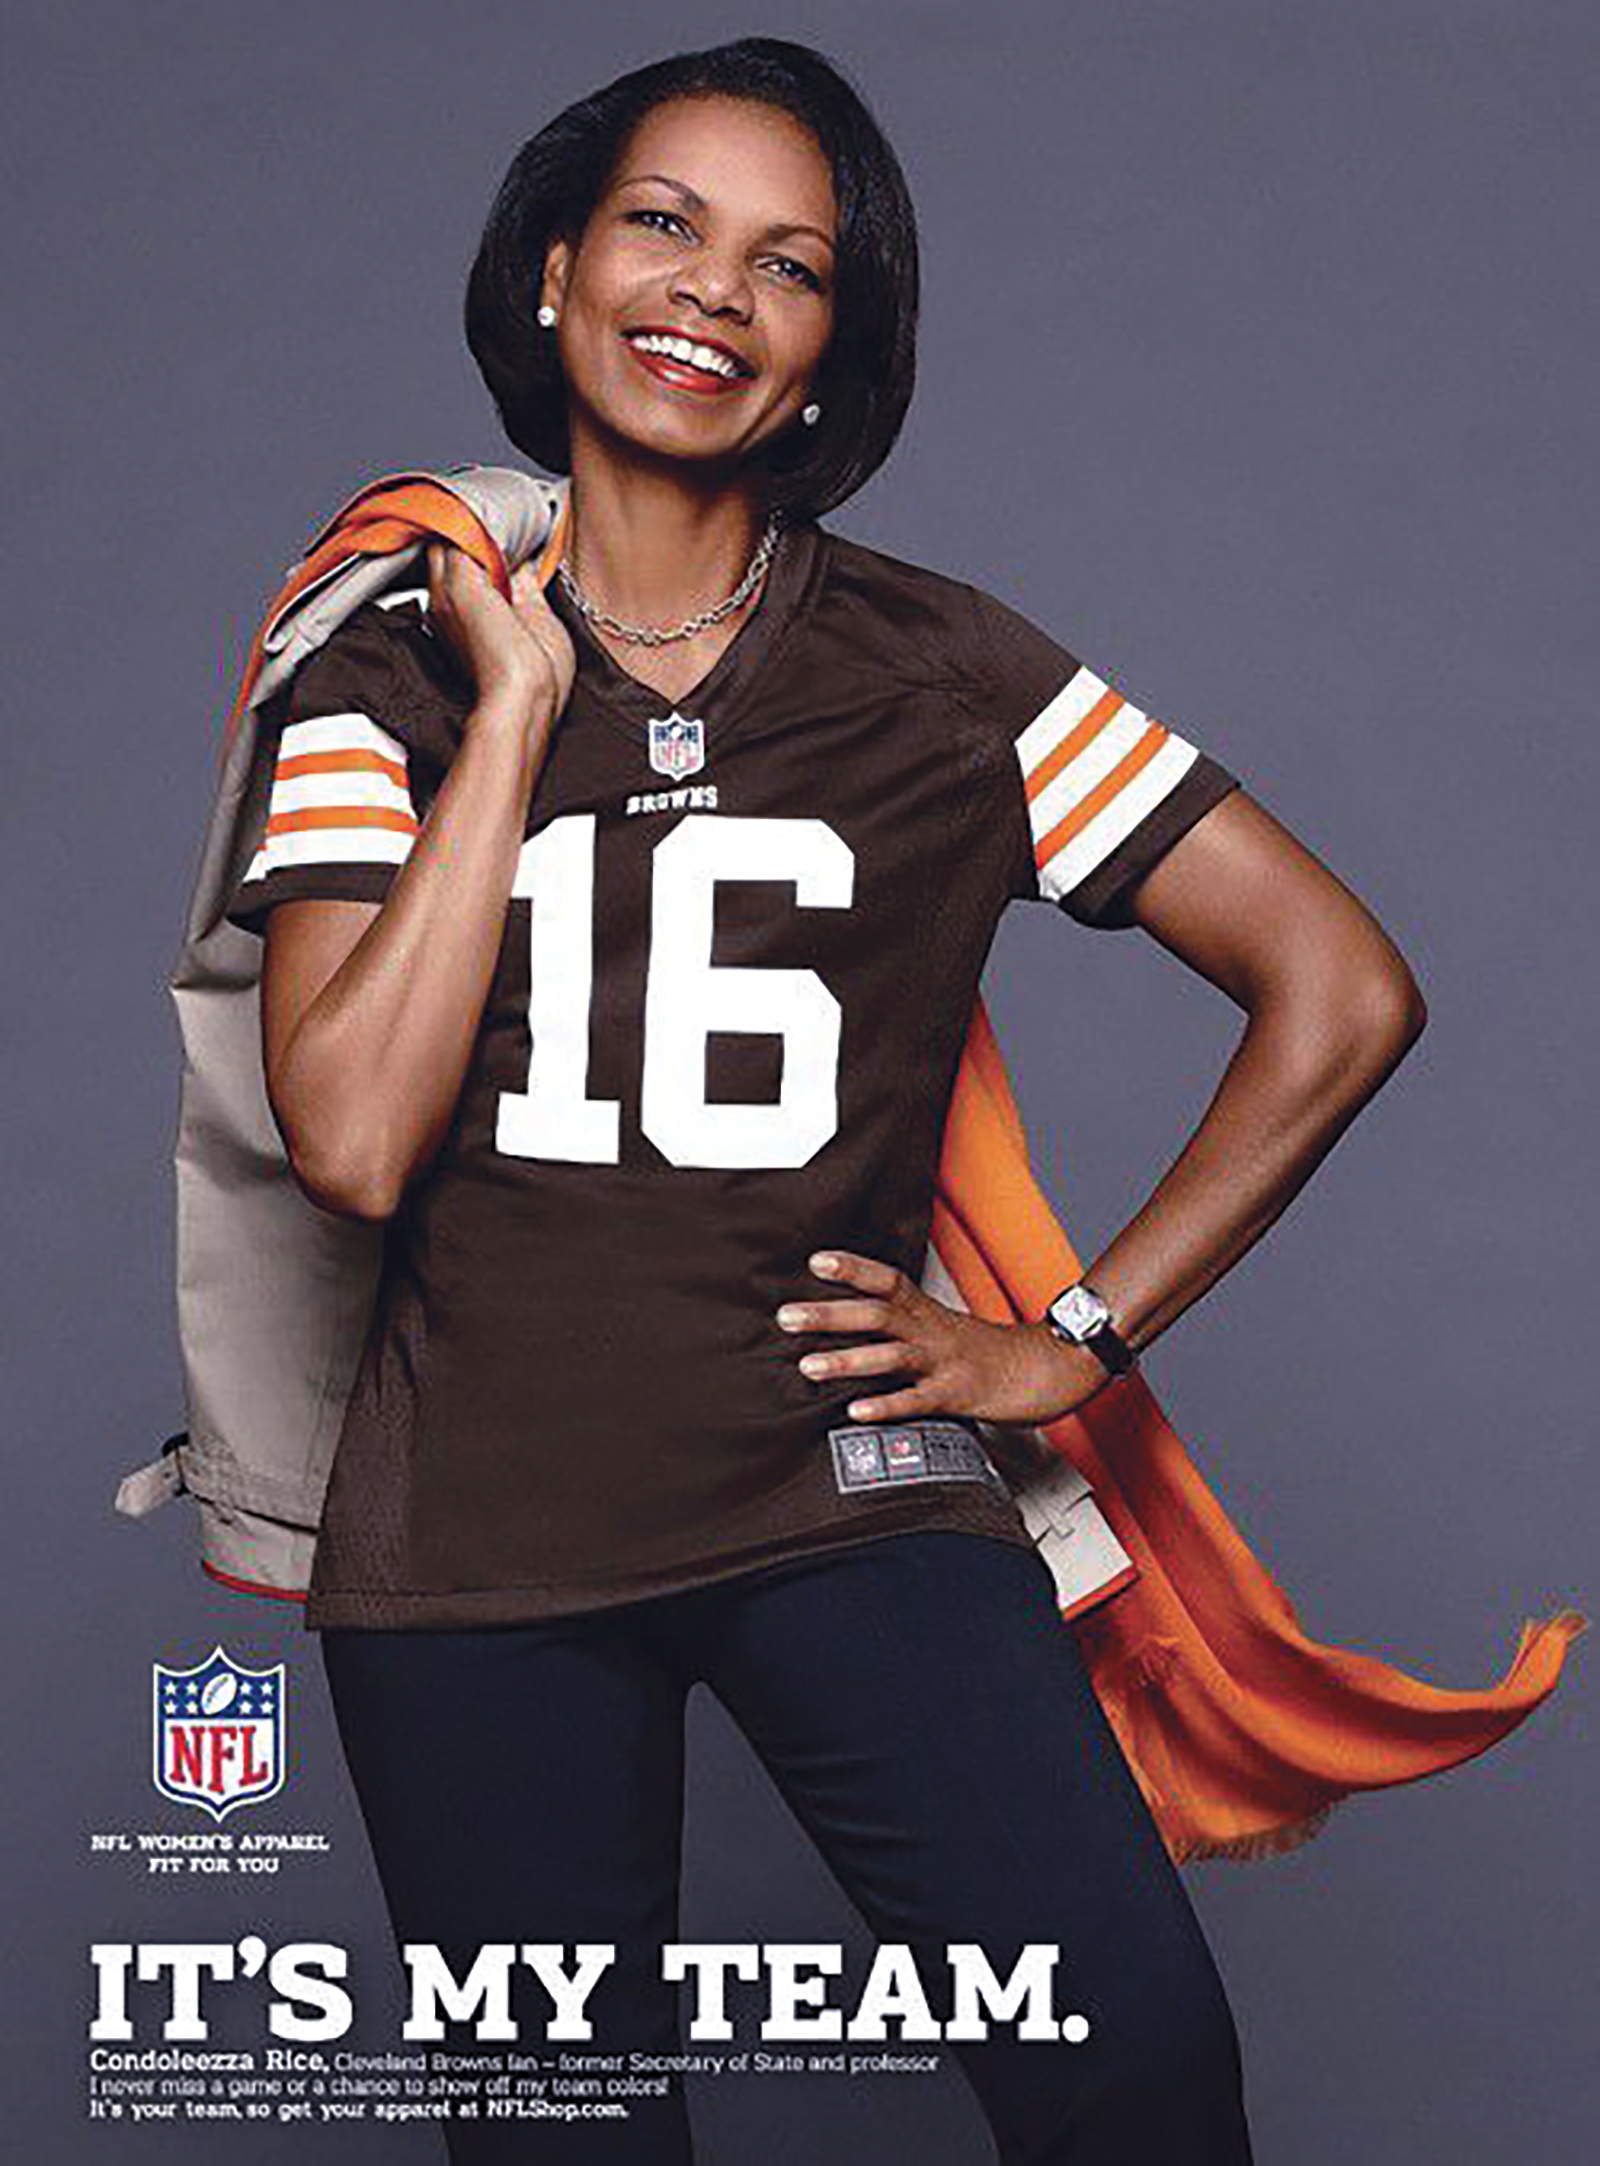 Recently, Condoleezza Rice was trending on social media when it was reported by NFL insider, Adam Schefter that the Cleveland Browns were considering the former secretary of state for its most recent head coaching vacancy.